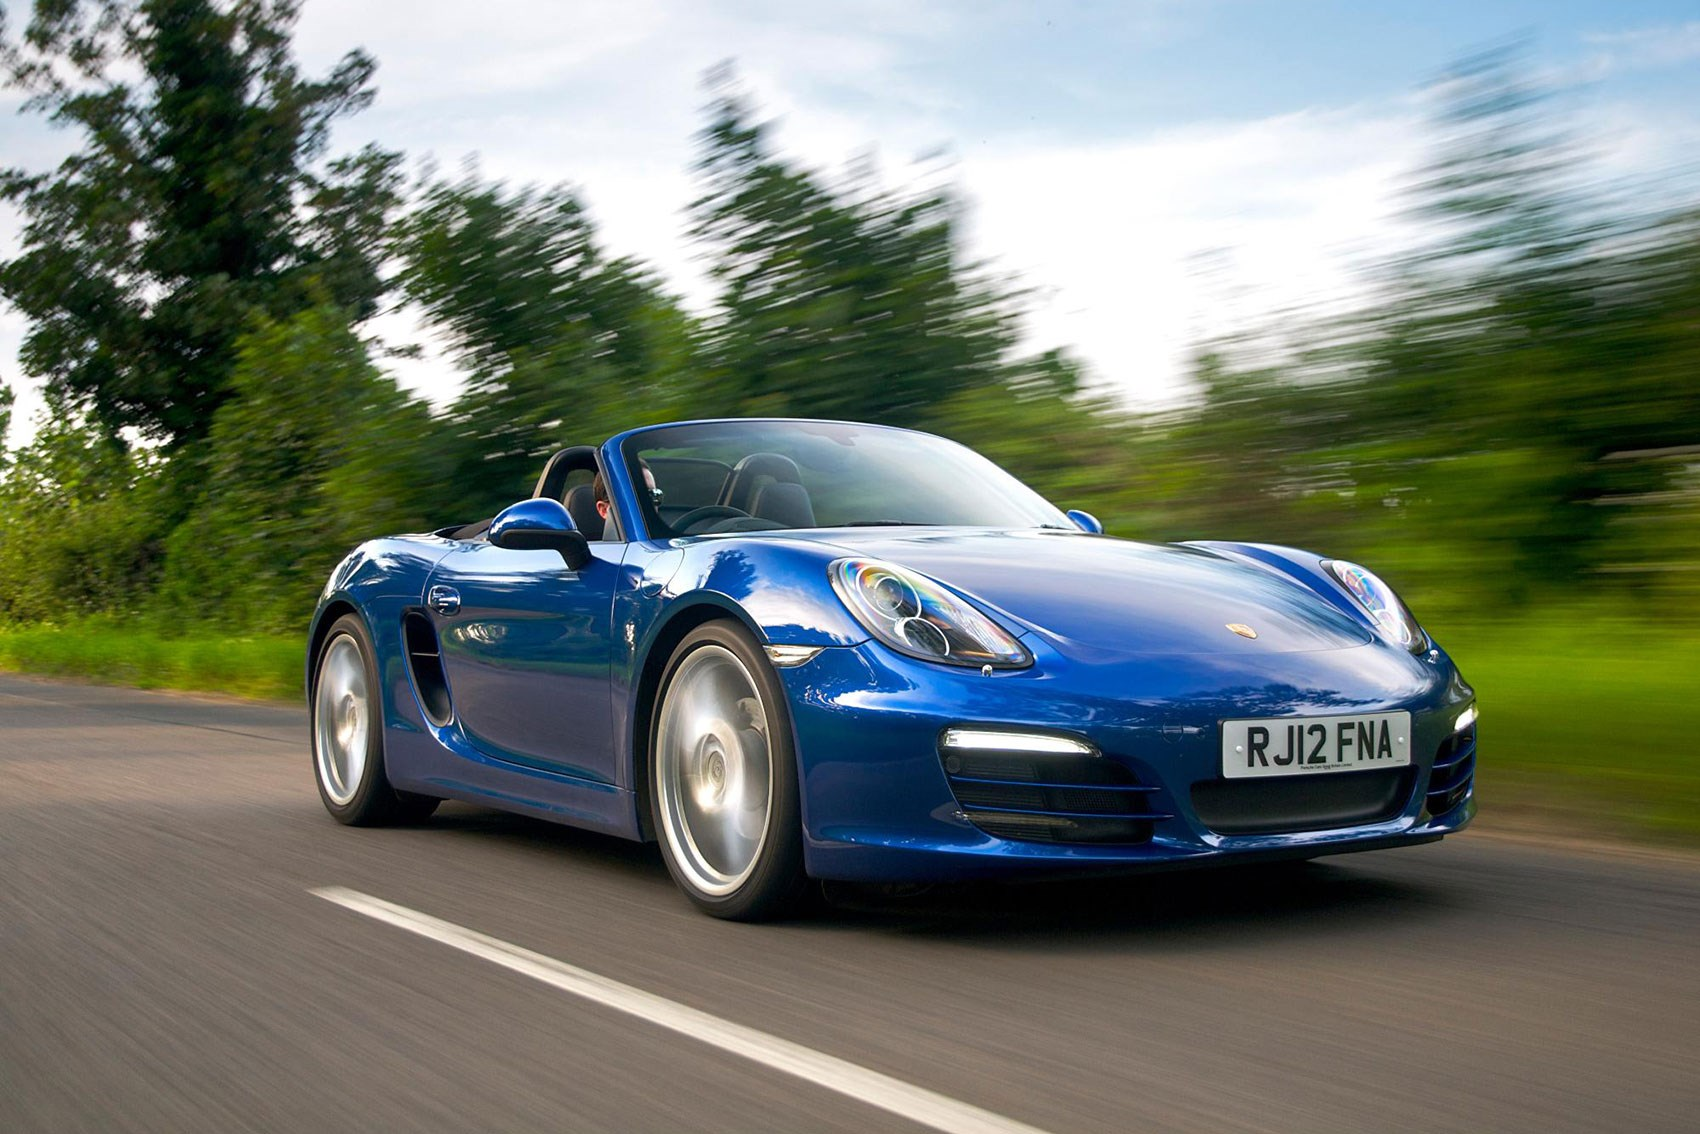 1boxster Fascinating Porsche 918 Spyder Cost Uk Cars Trend